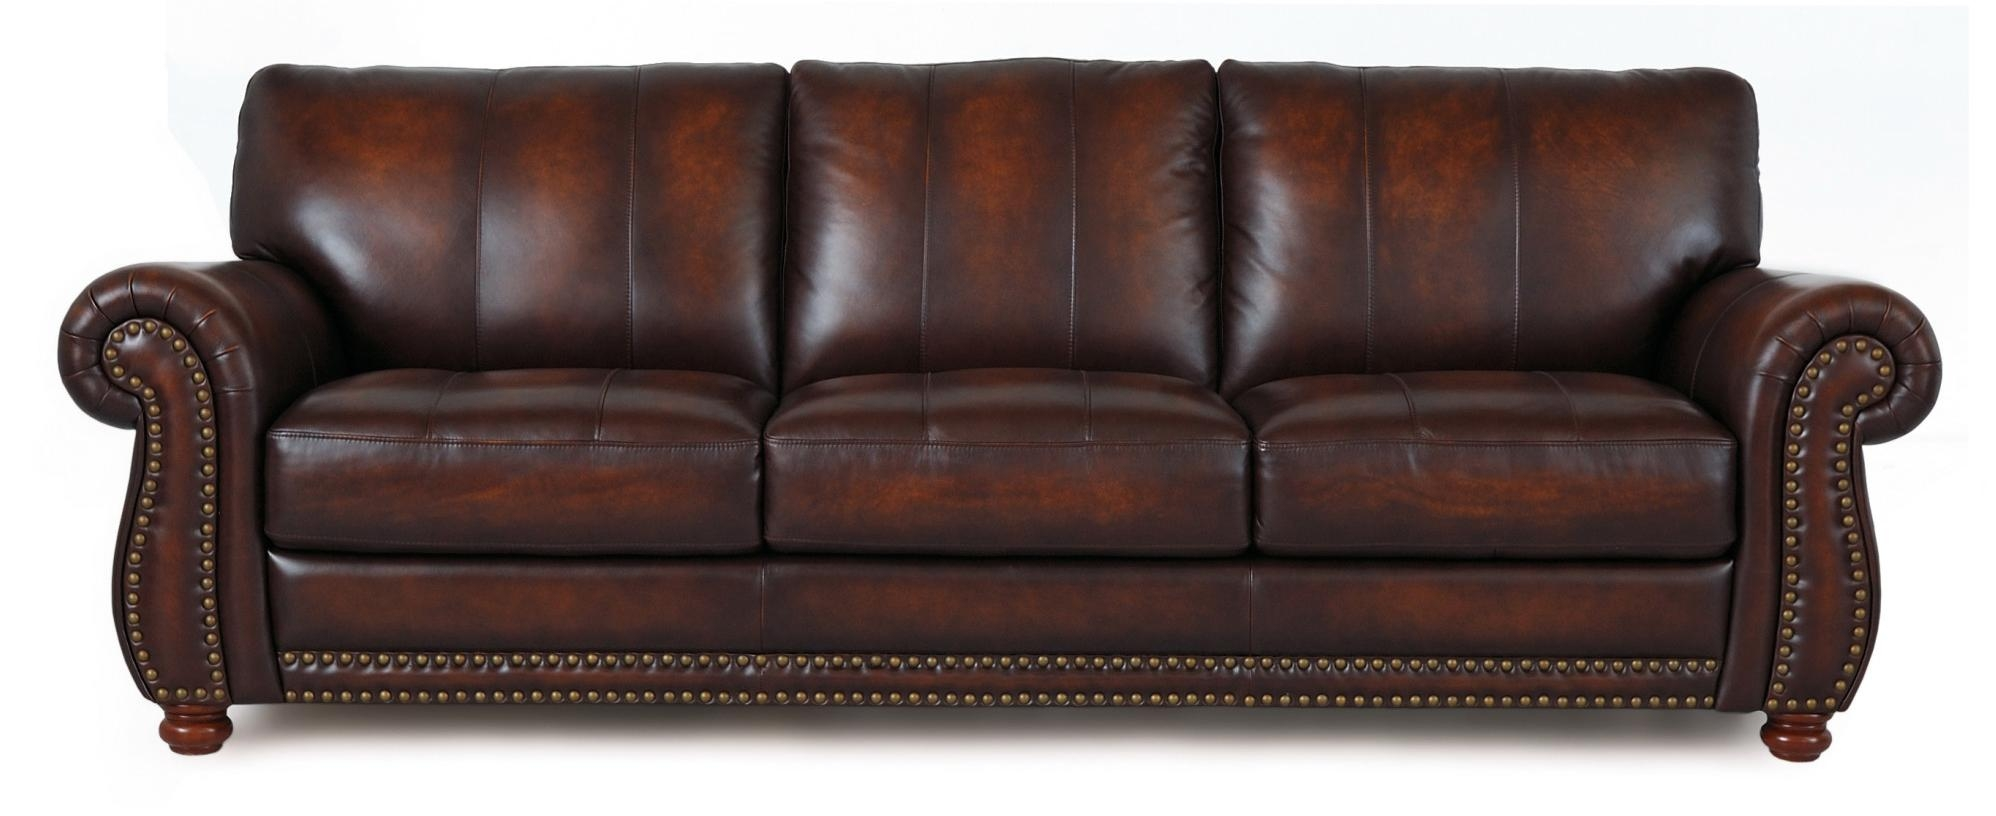 Futura Leather Futura Leather Traditional Leather Sofa With Regarding Traditional Leather Couch (Image 5 of 15)